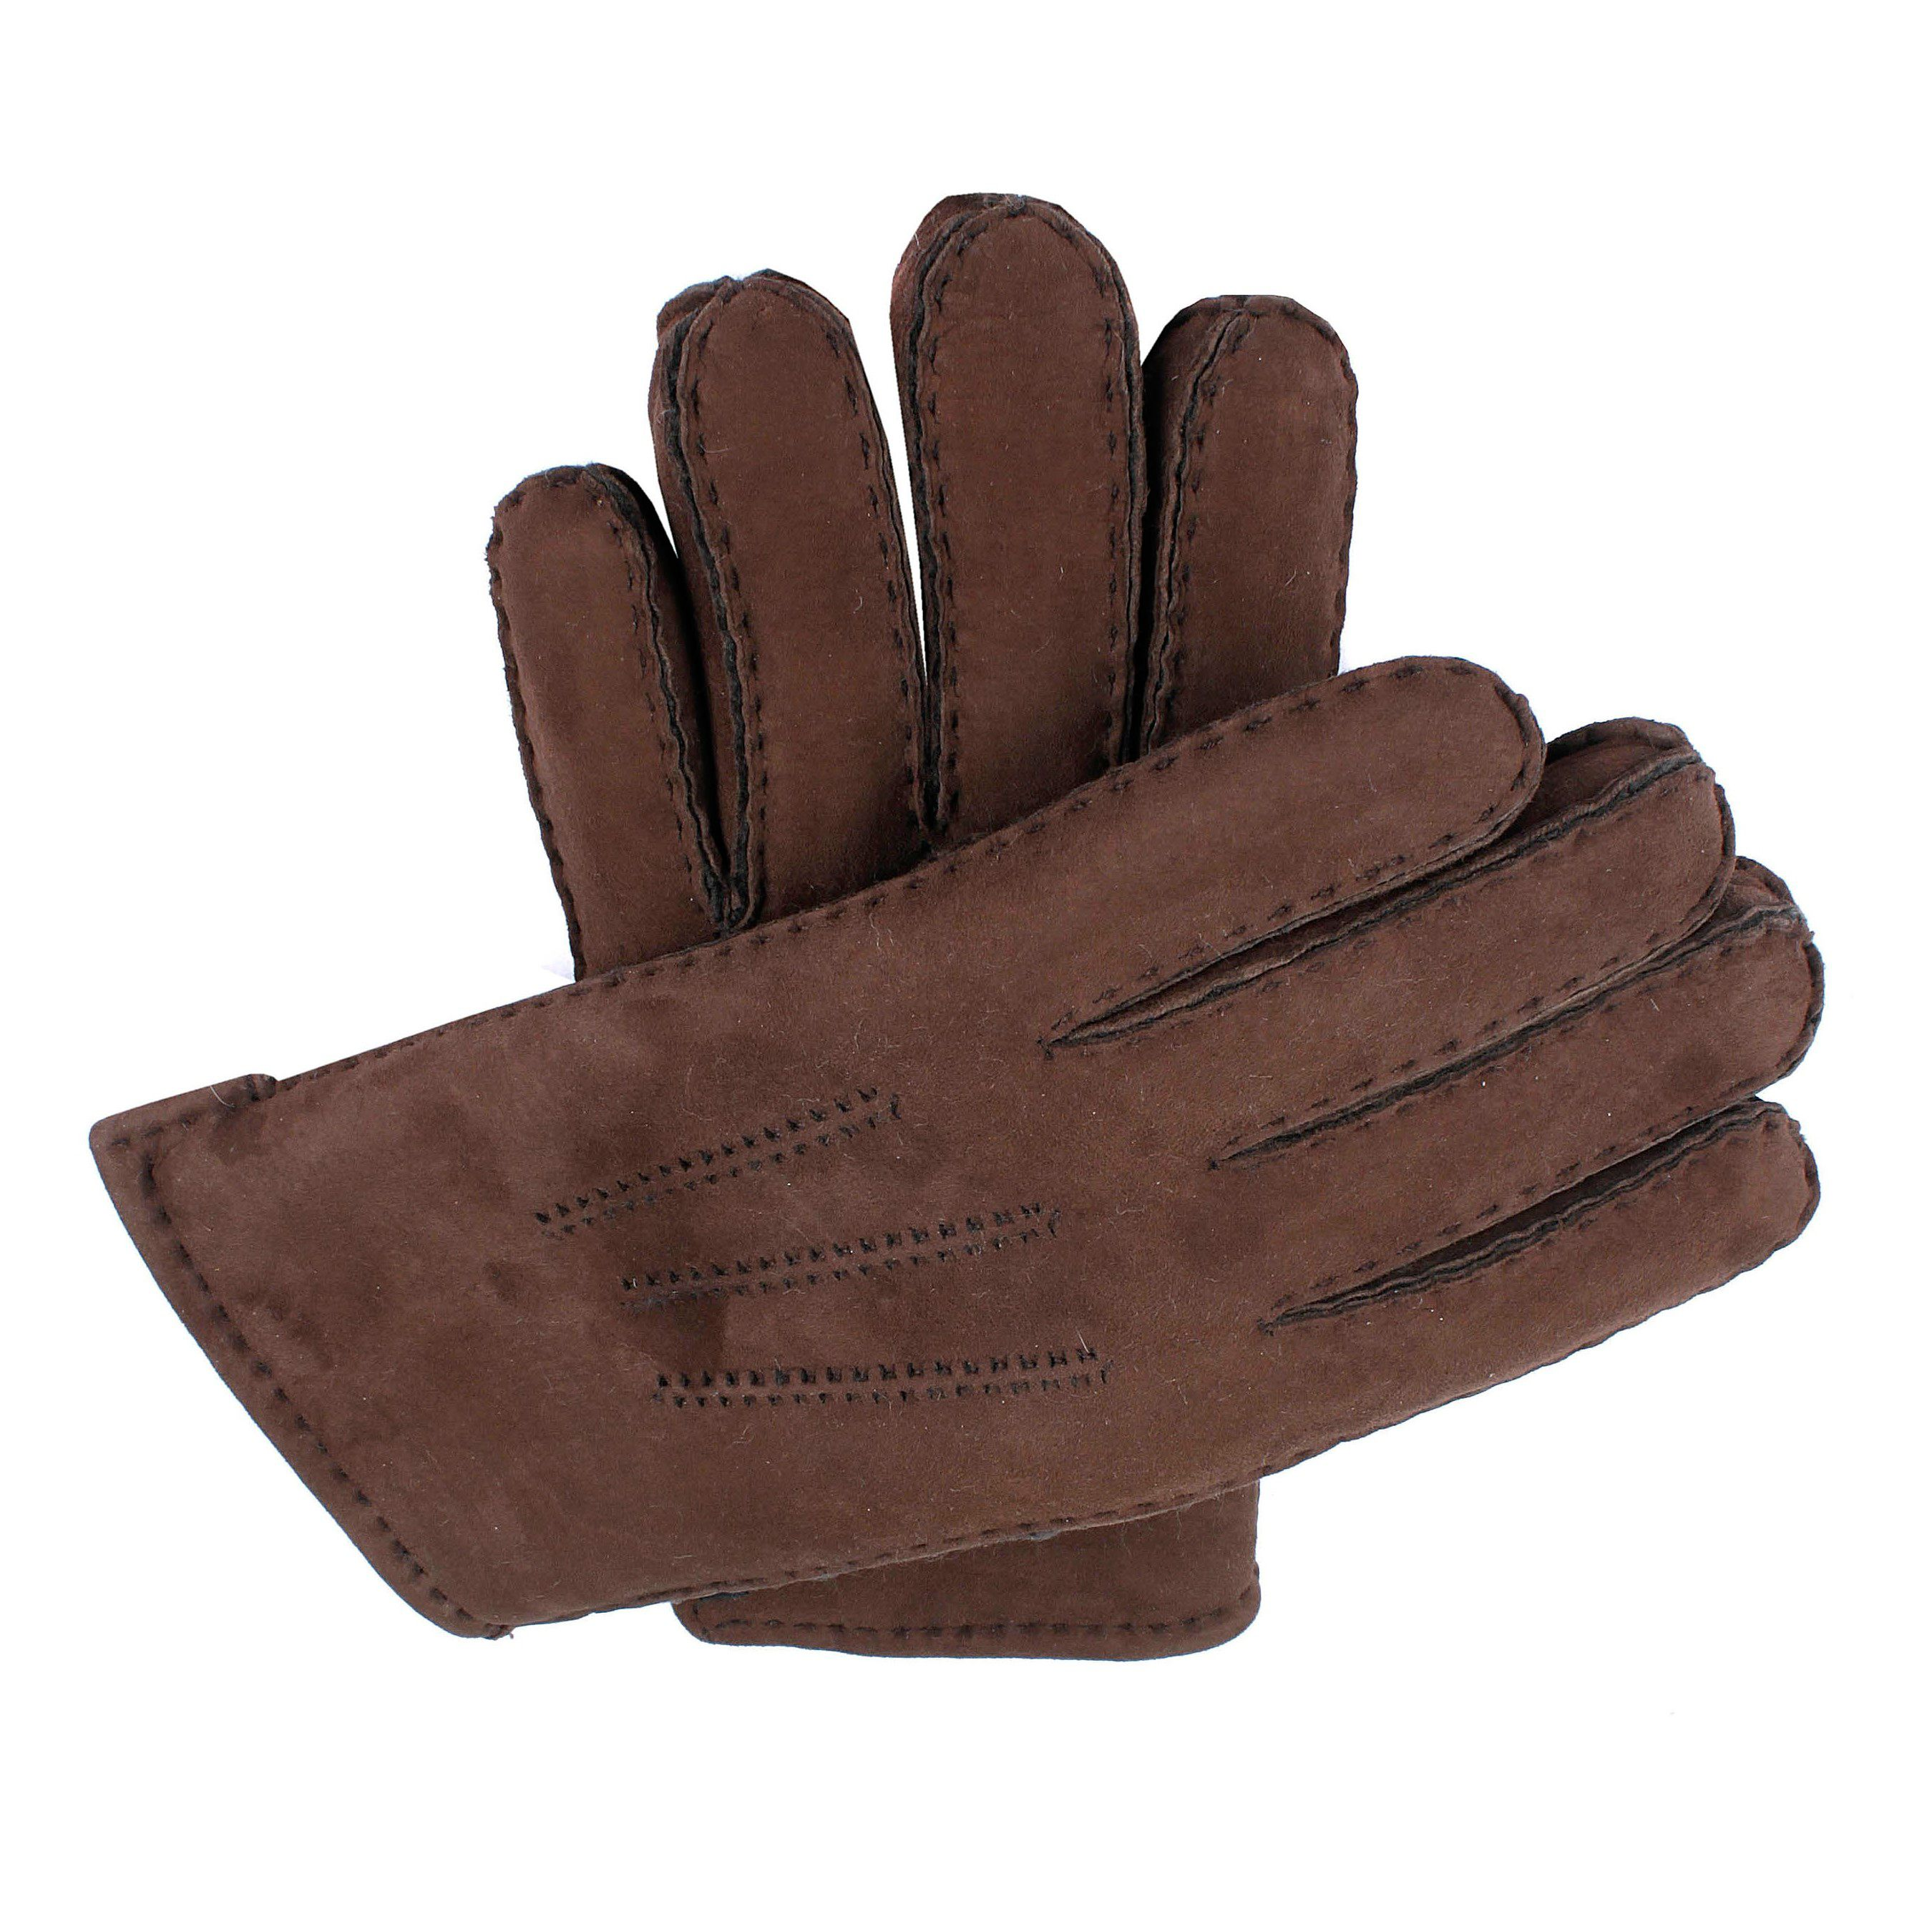 Dents Dents Mens handsewn lambskin glove, Chocolate